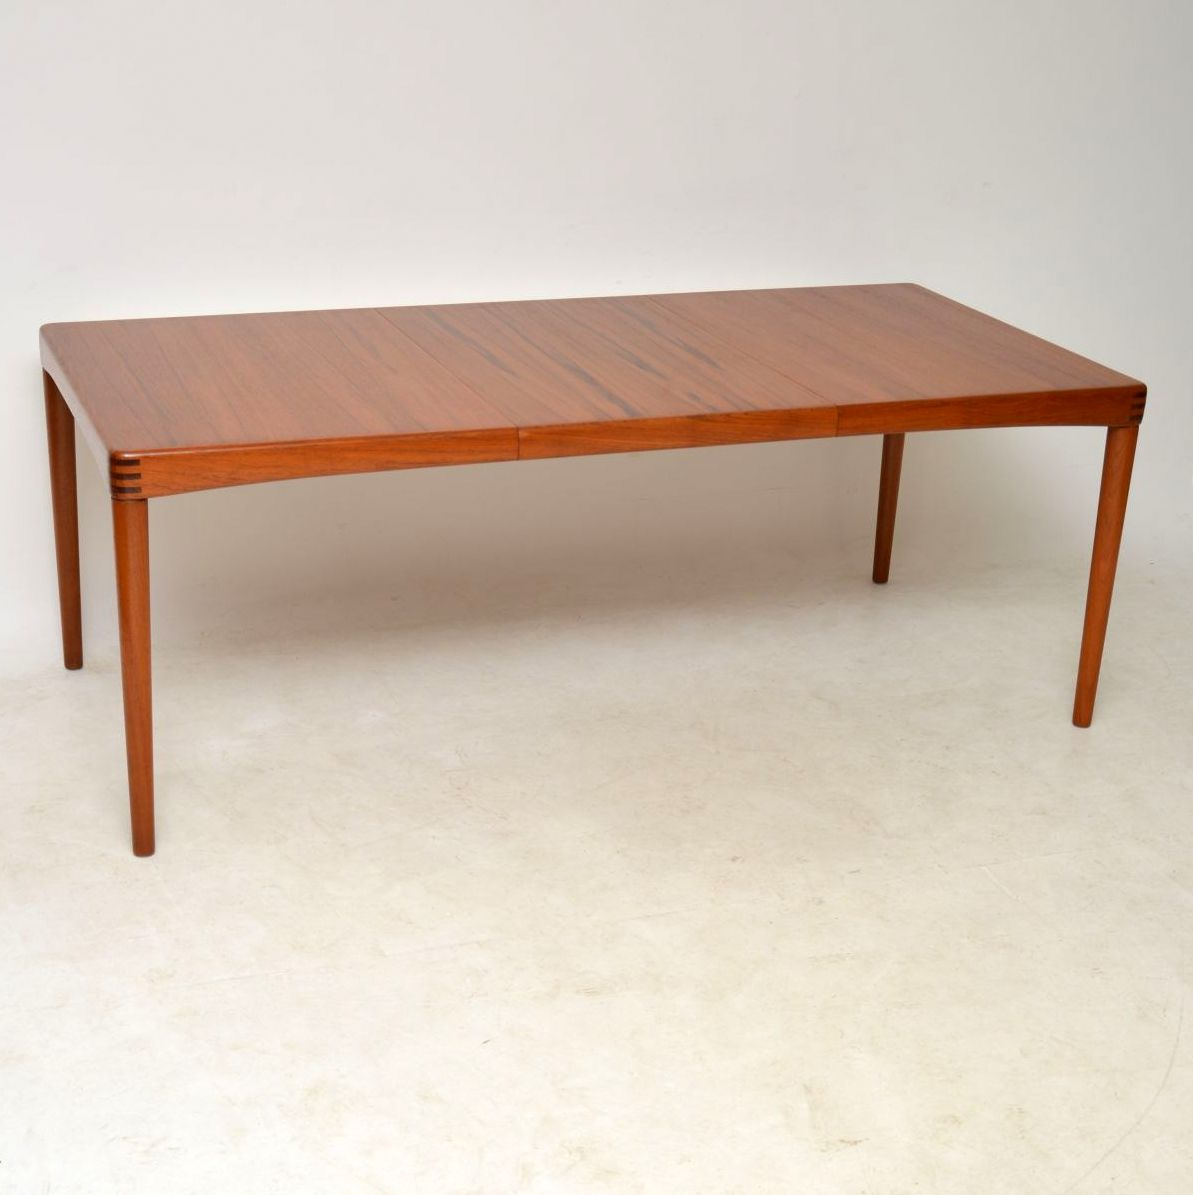 1960s Danish Teak & Rosewood Dining Table by H.W Klein for Bramin ...